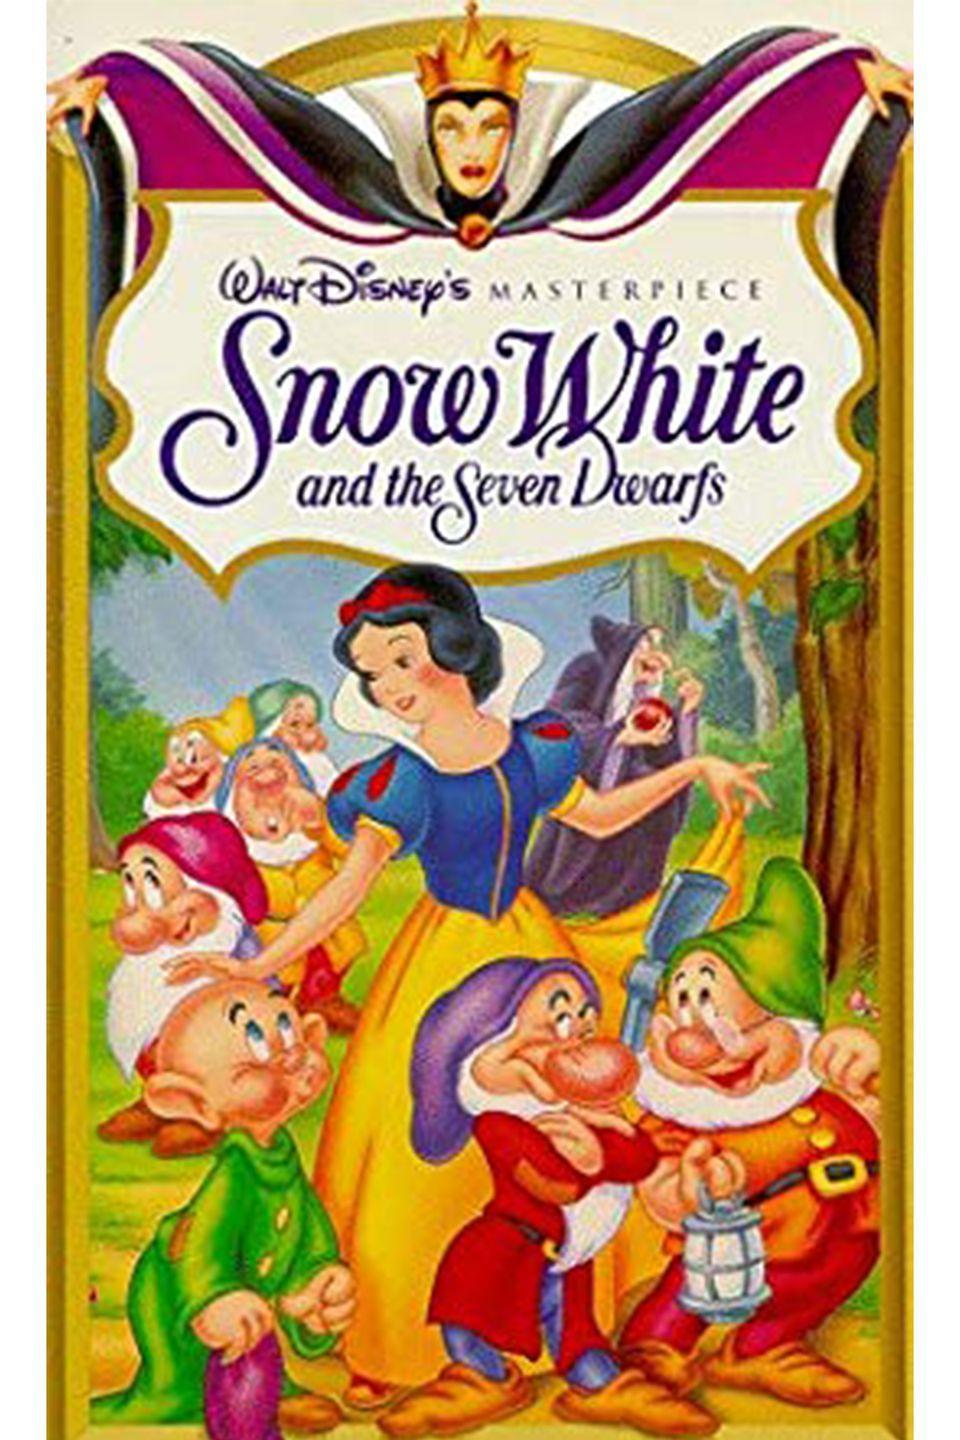 "<p>Nope, that wasn't a line in <em>Snow White</em> either. In fact, <a href=""https://www.youtube.com/watch?v=Br0DCEEBplY"" rel=""nofollow noopener"" target=""_blank"" data-ylk=""slk:the Wicked Queen says"" class=""link rapid-noclick-resp"">the Wicked Queen says</a>, ""Magic mirror on the wall..."" Yep, our childhood has been ruined too.</p>"